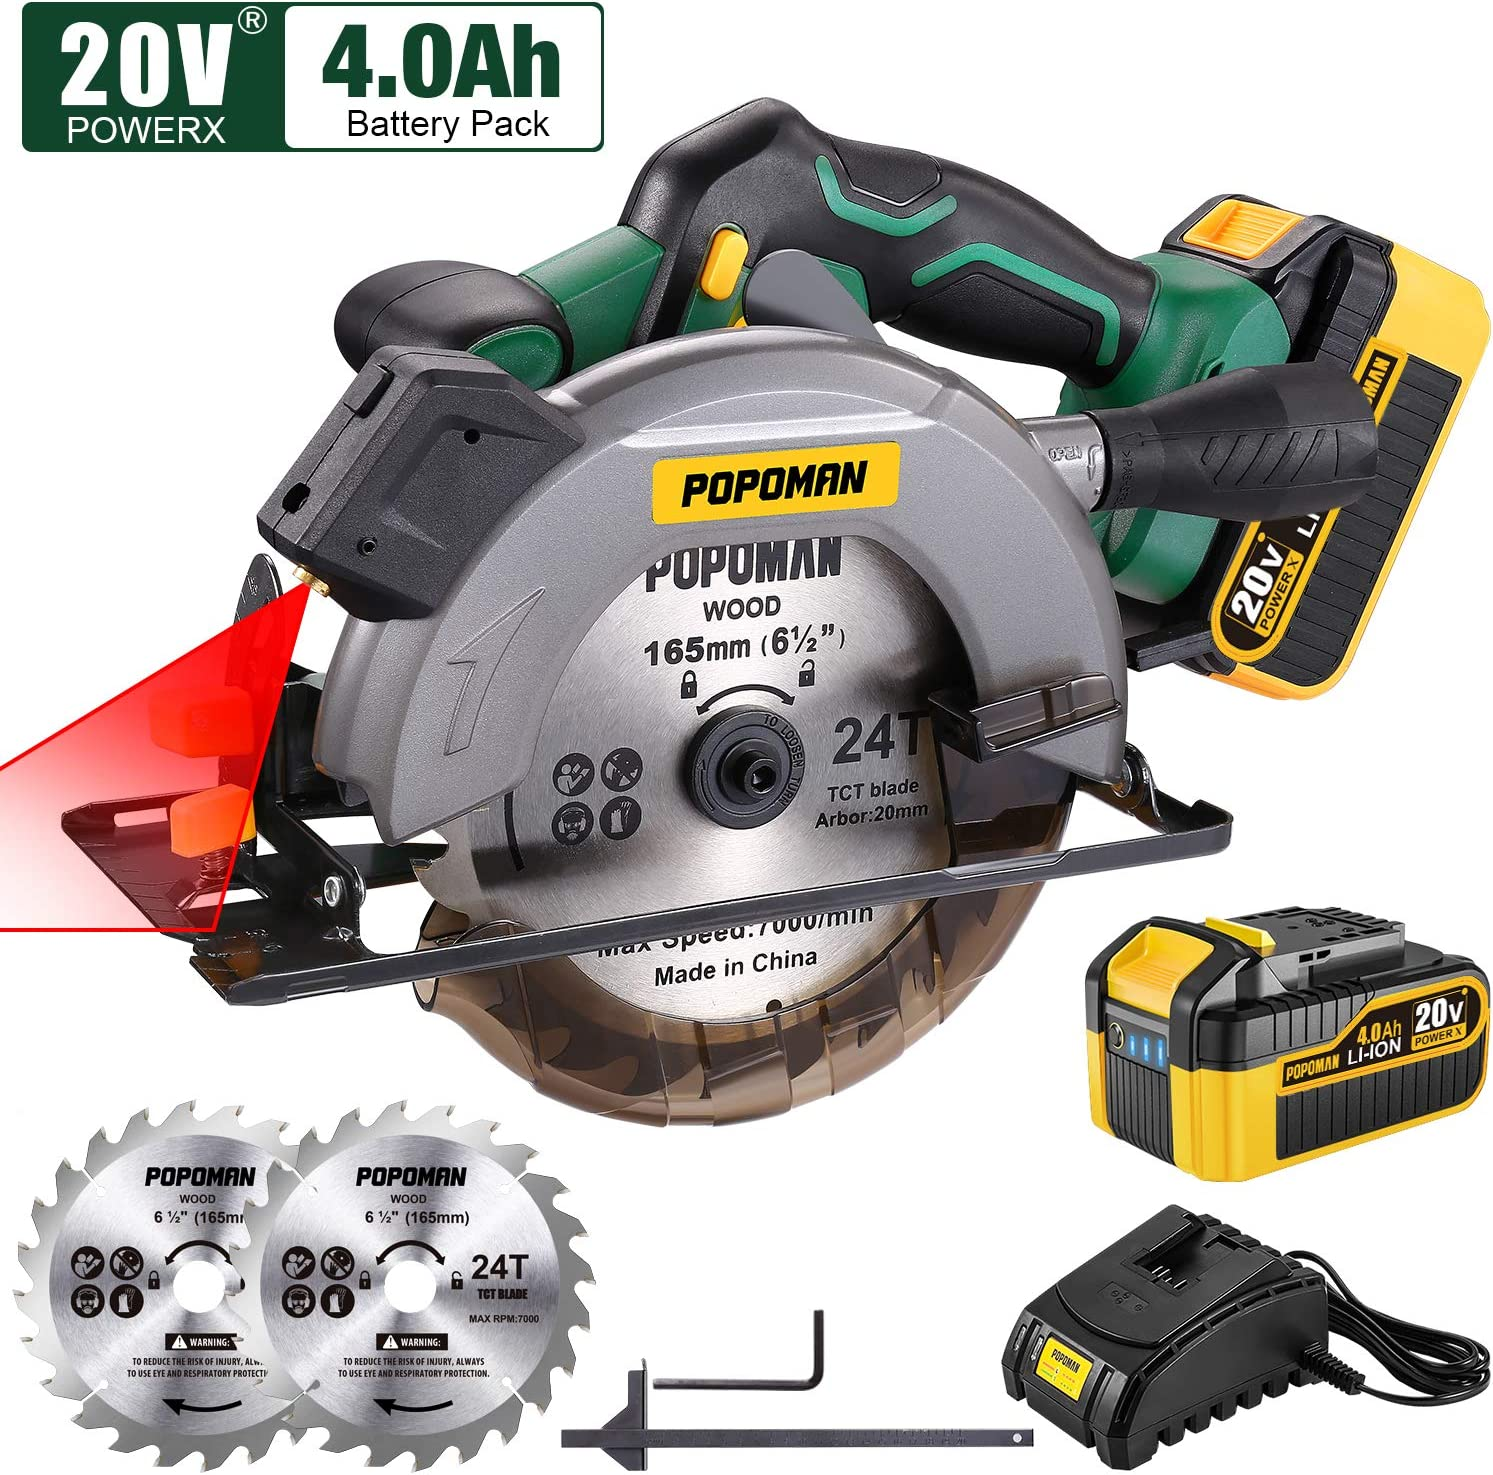 POPOMAN Cordless Circular Saw, 4300 RPM, 20V 4.0Ah Battery, Fast Charger, 2 x Blade(6-1/2